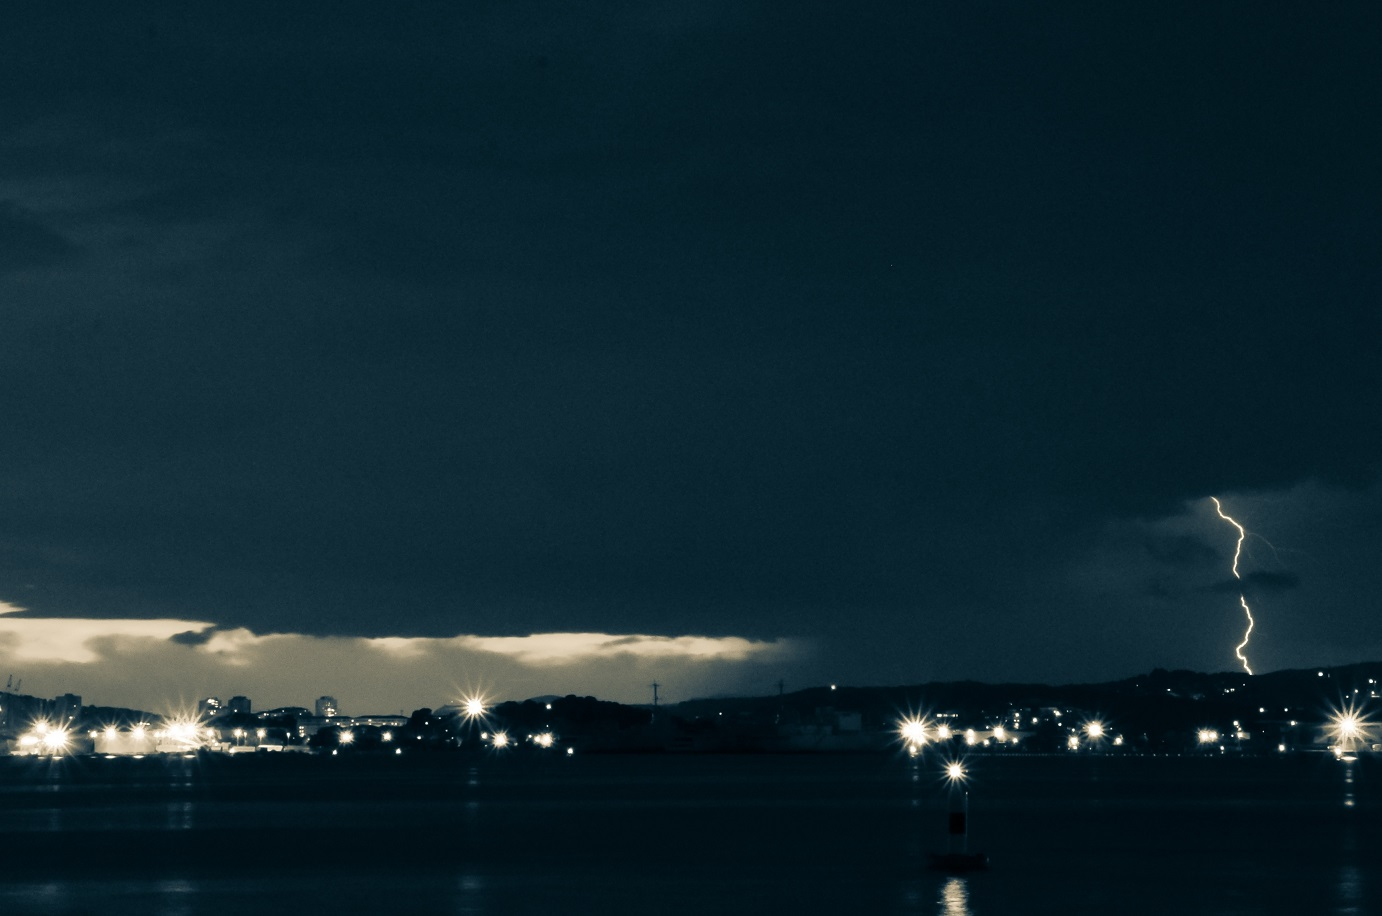 thunder and lightning across the sky in a storm